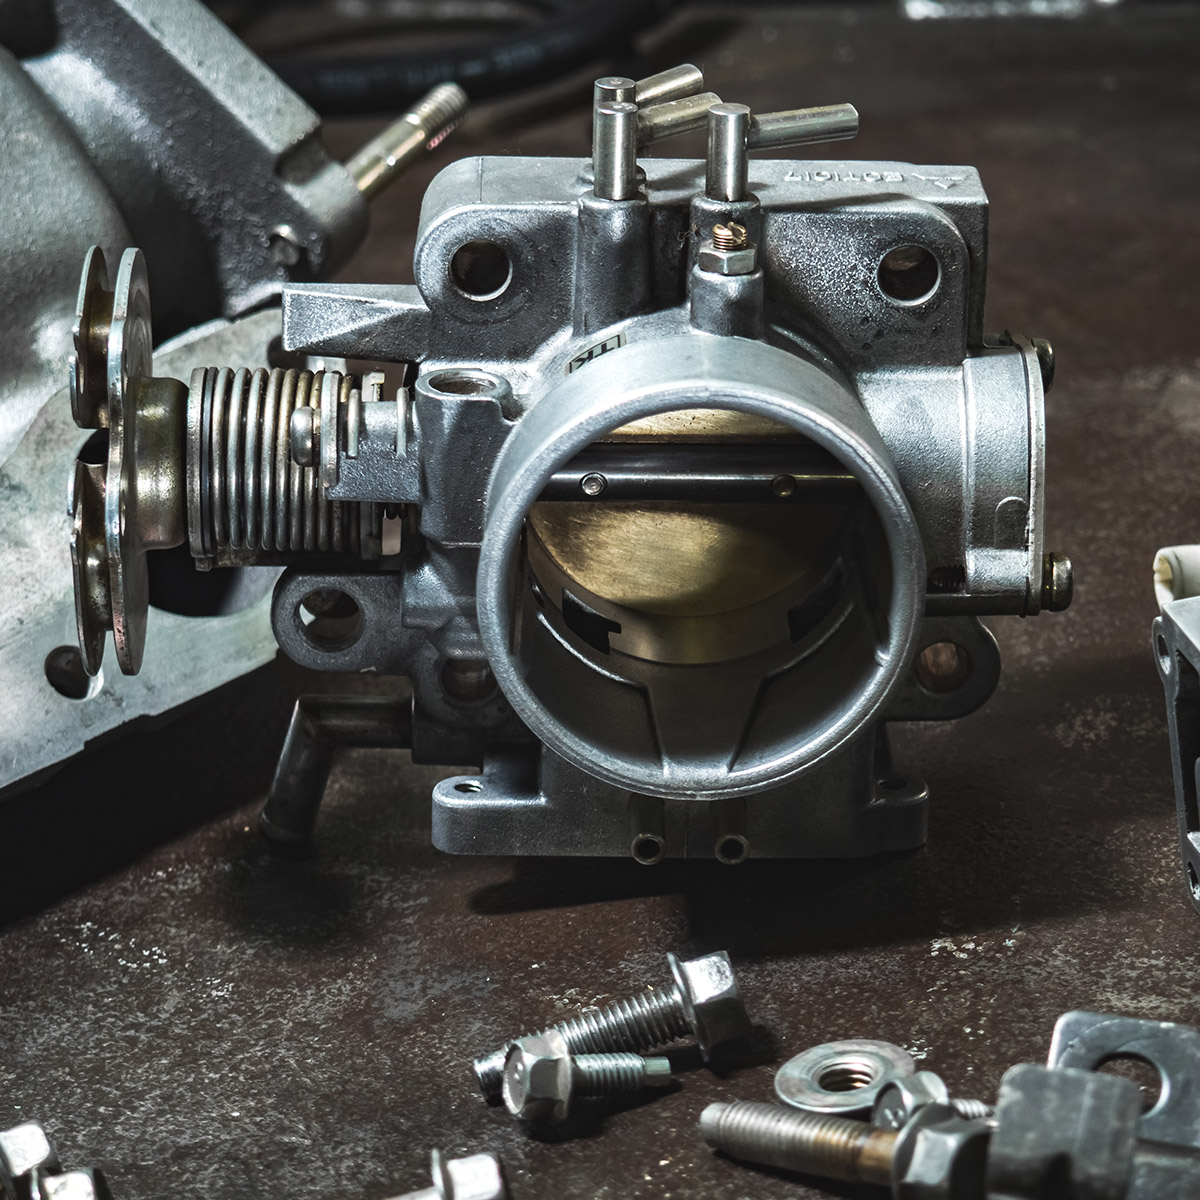 Throttle body replacement costs & repairs | AutoGuru